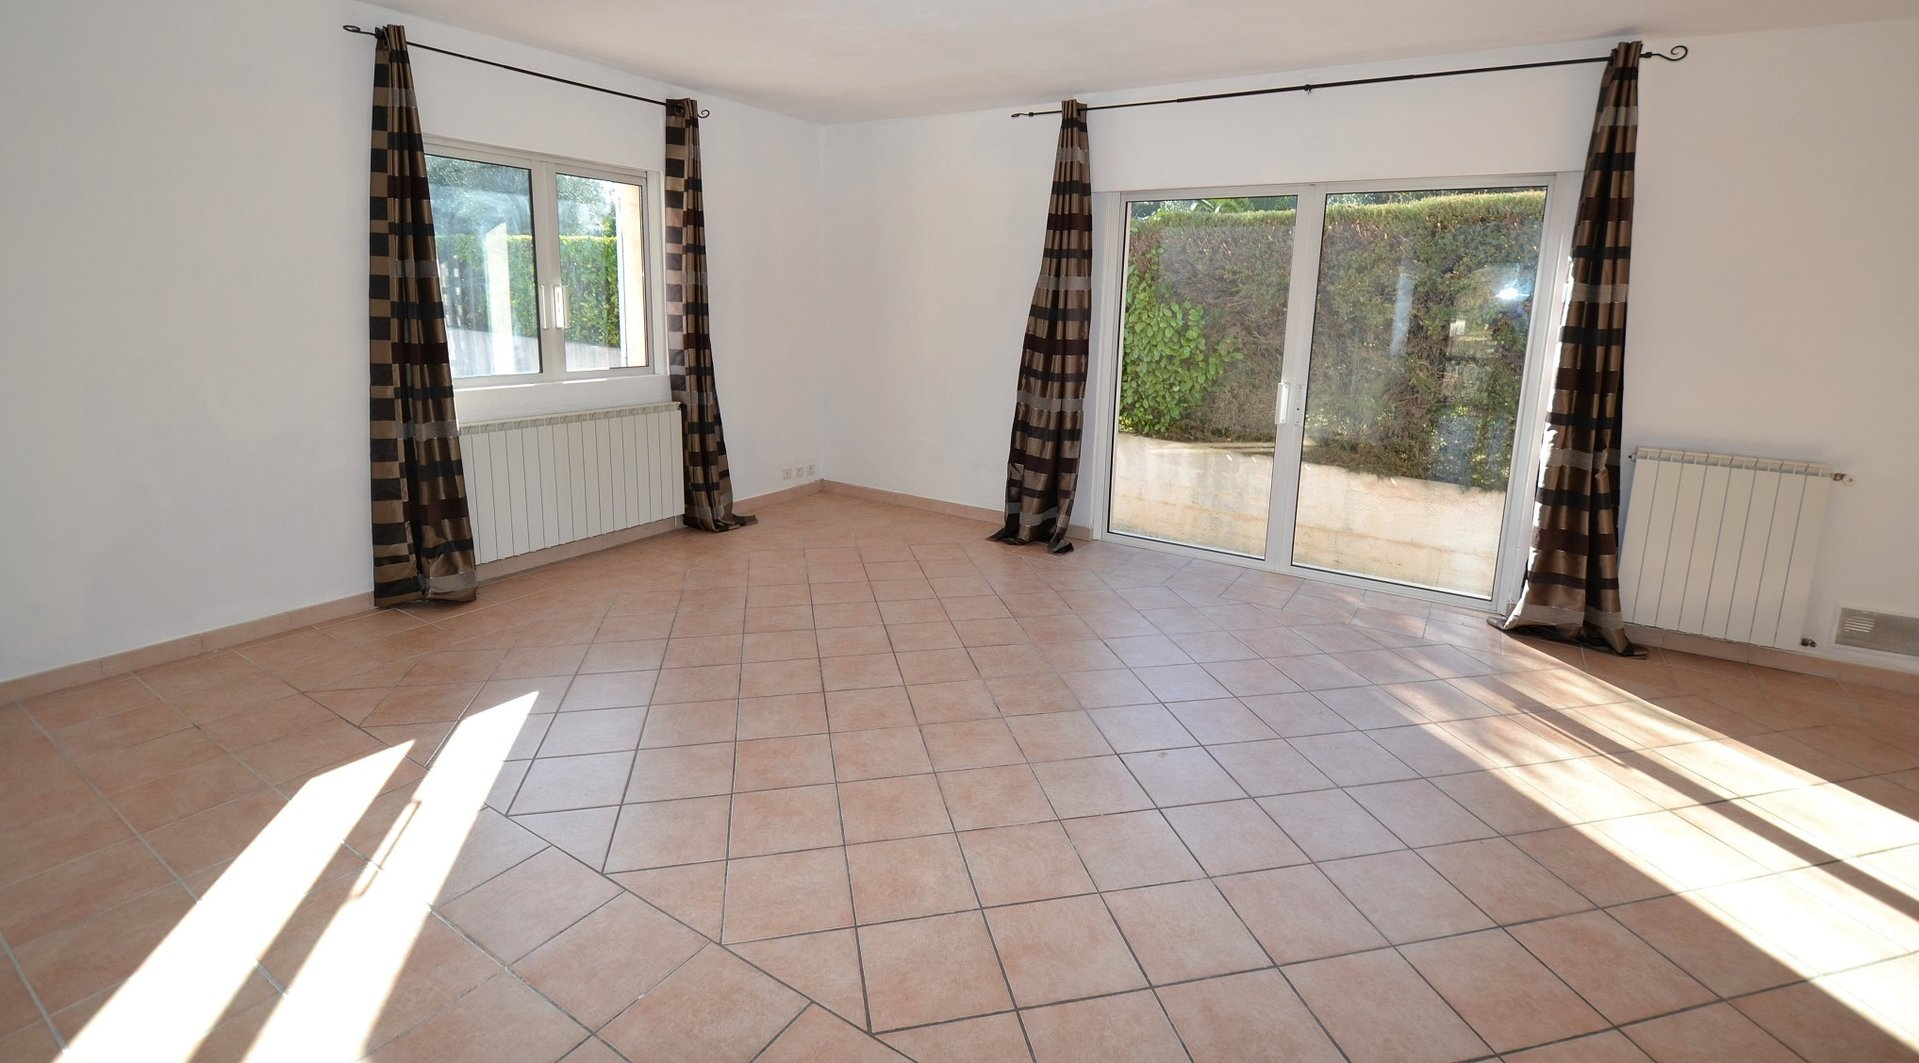 Location Maison - Biot Saint Julien